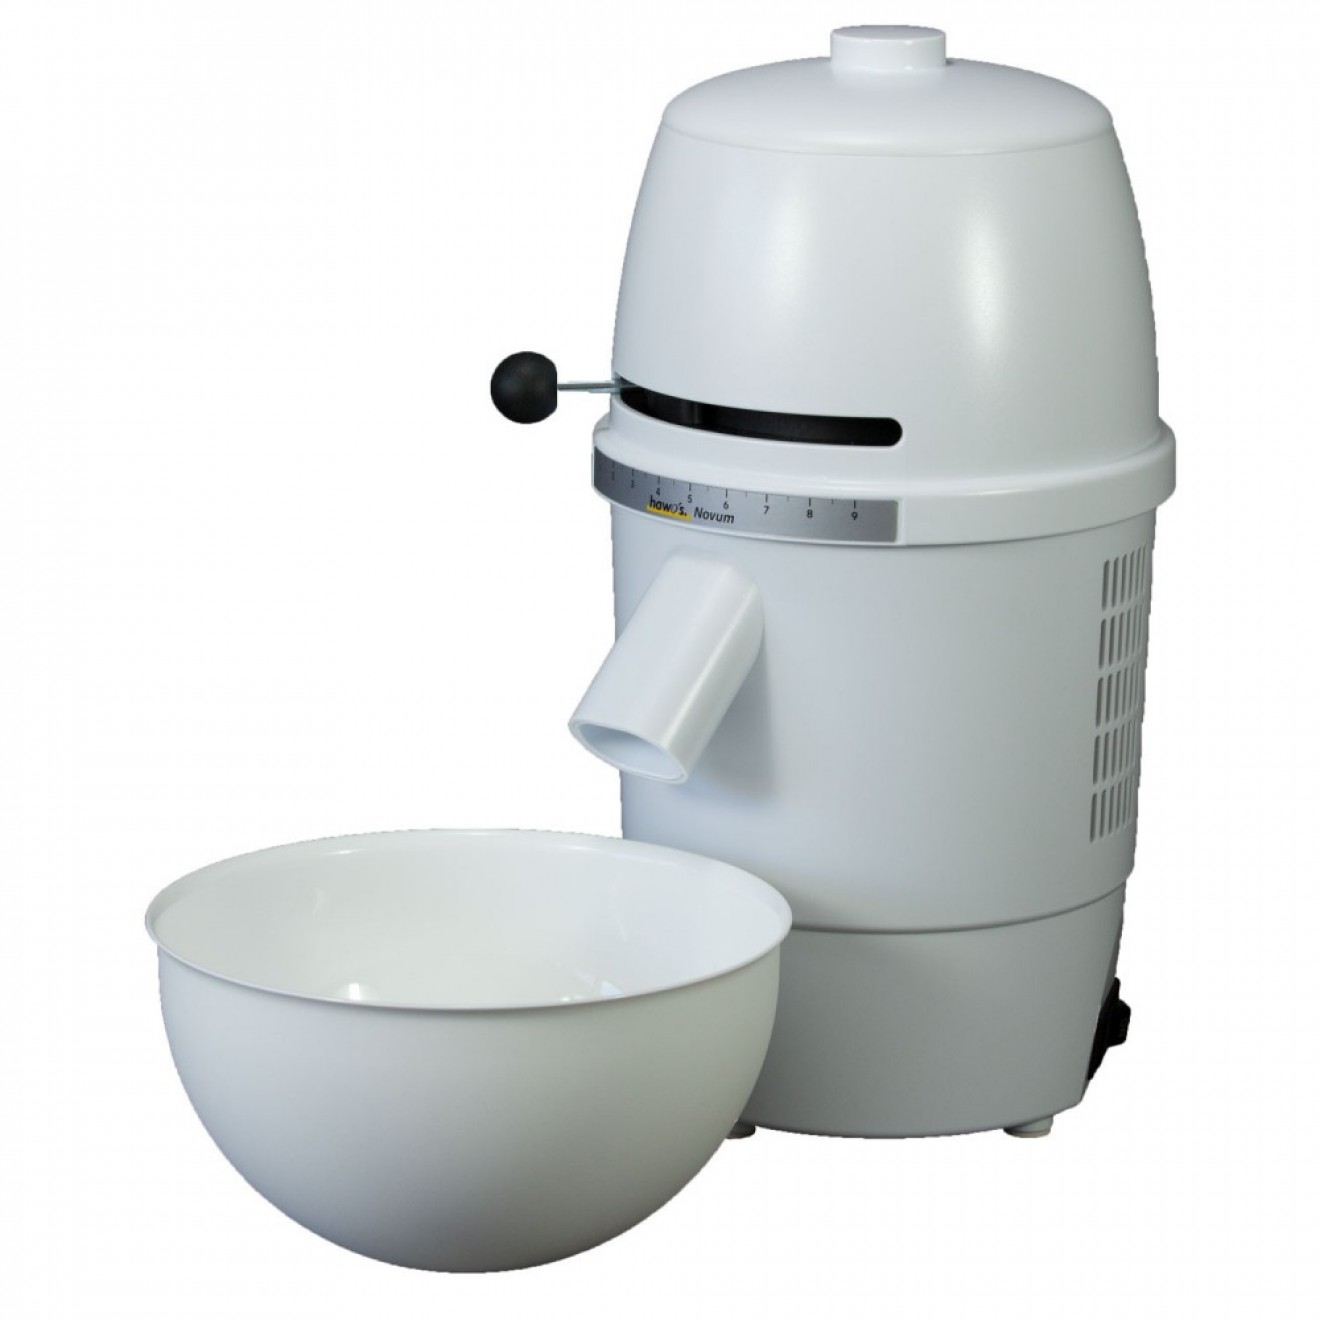 Electric Grain Mill hawos Novum, white